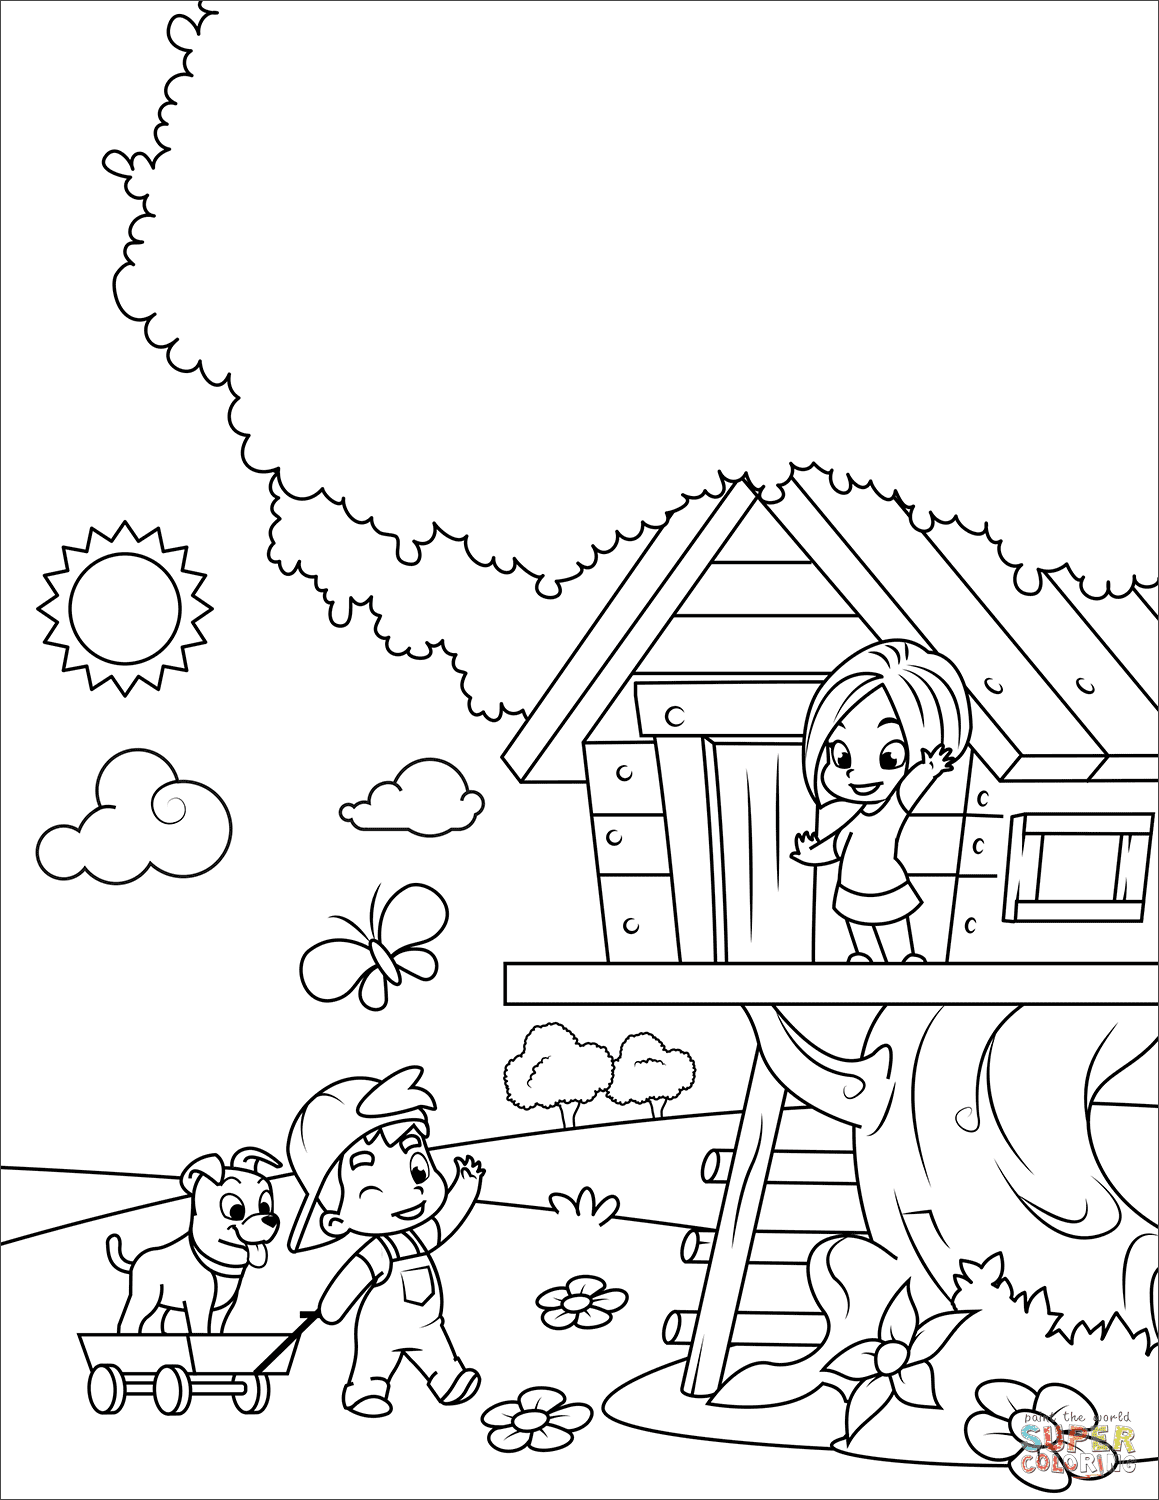 the Boy and Girl Playing in a Tree House coloring pages to view printable